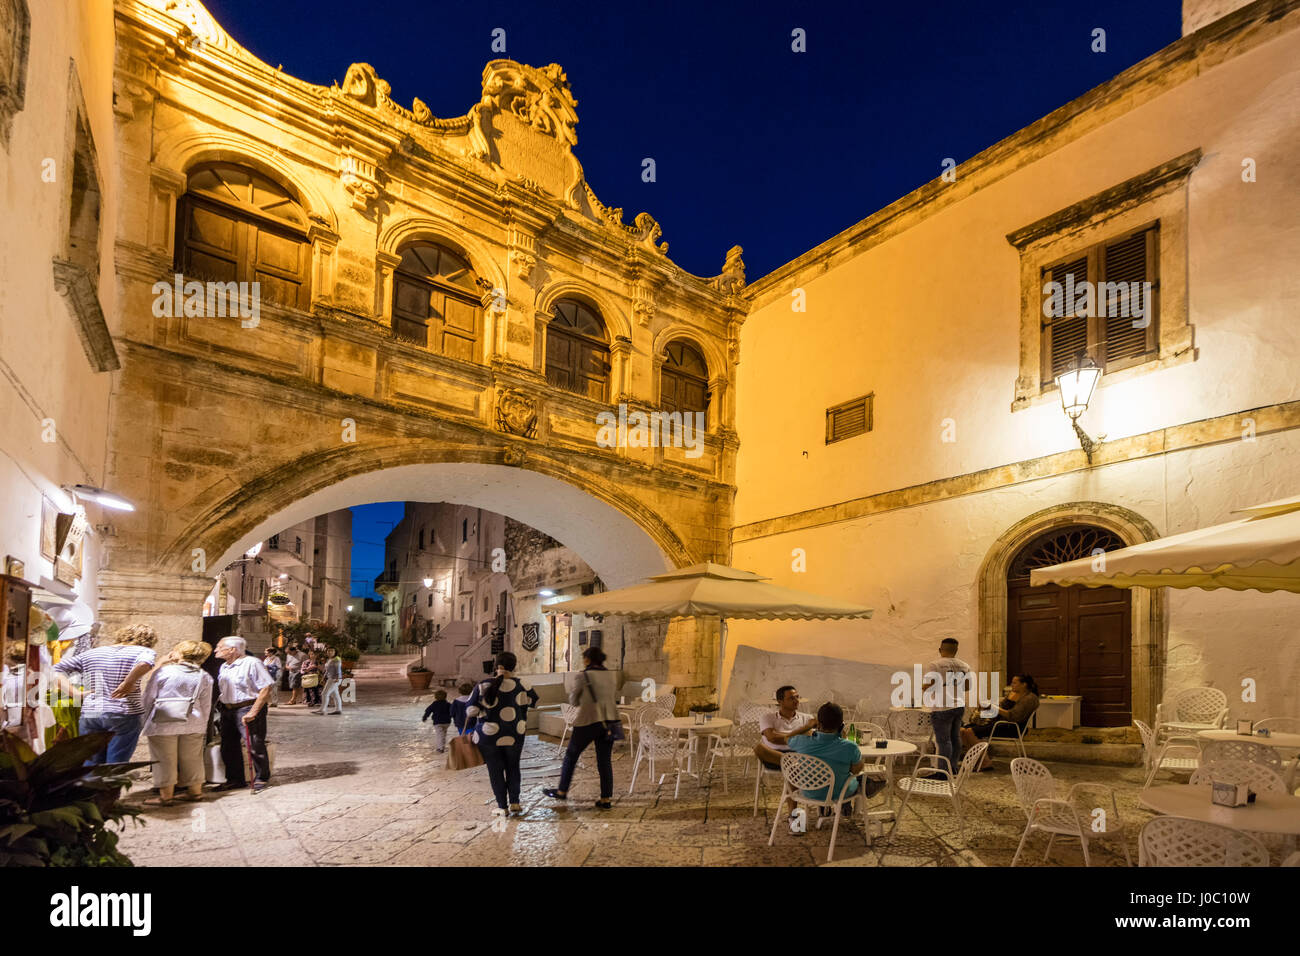 Night view of the typical alleys of the medieval old town, Ostuni, Province of Brindisi, Apulia, Italy - Stock Image